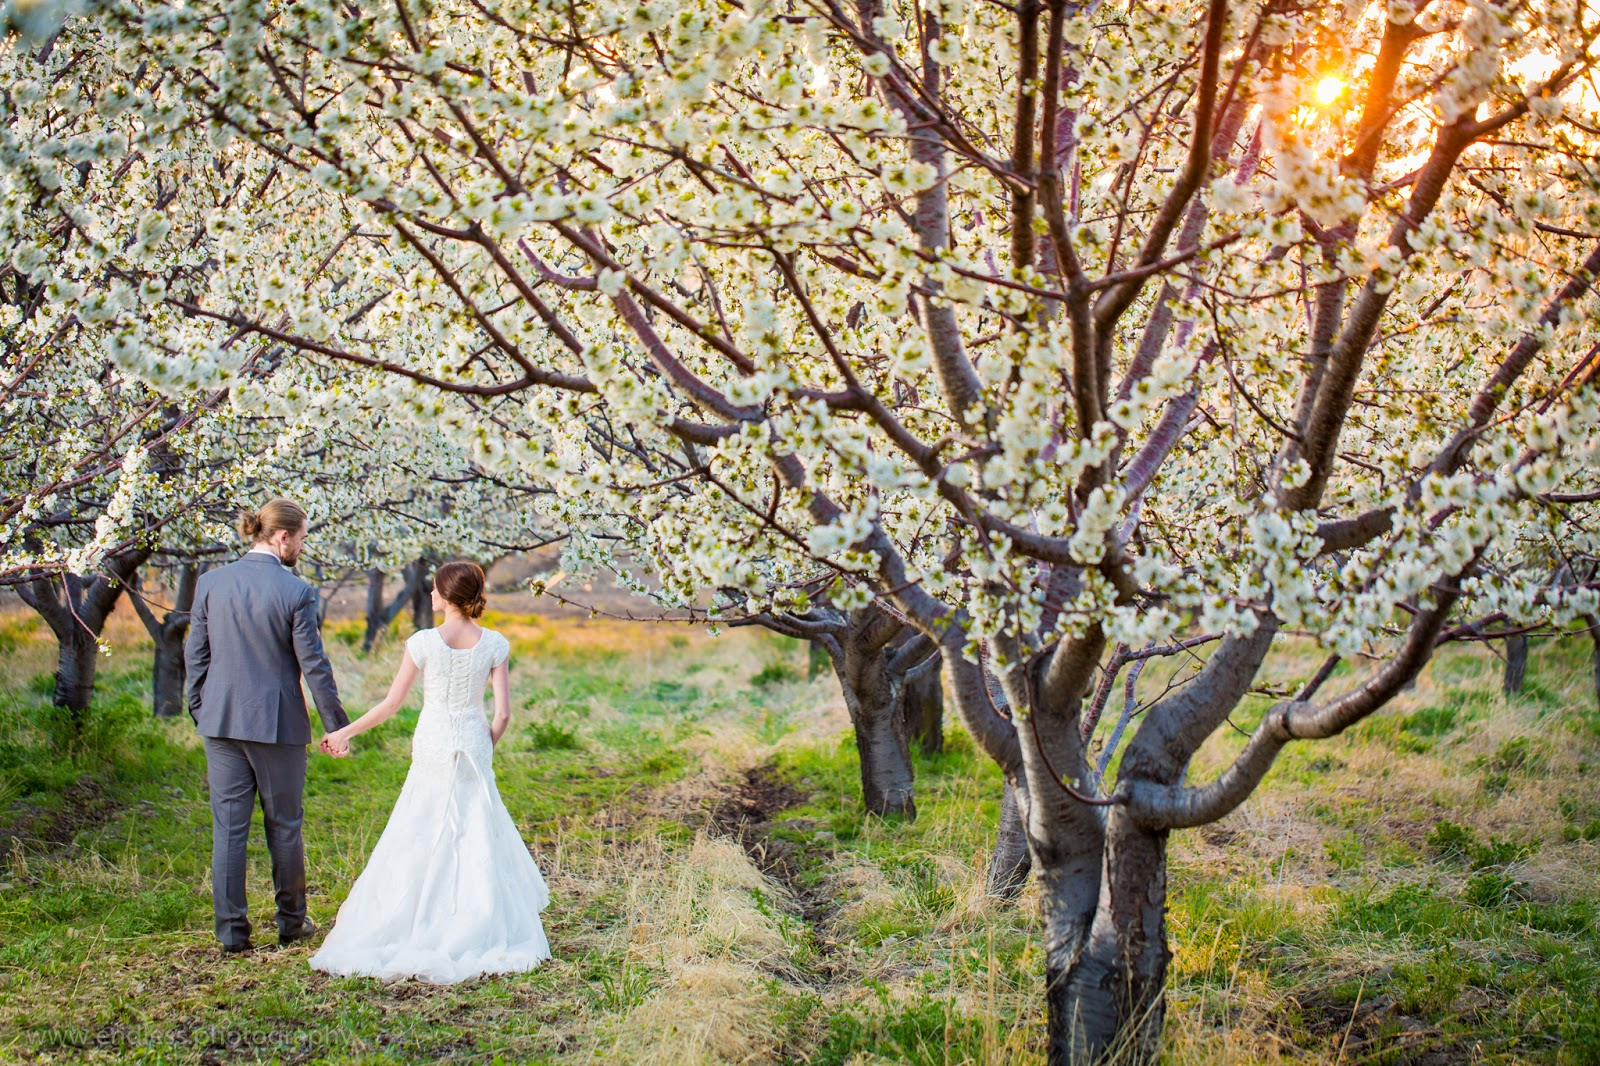 Logan Utah Photographers, Wedding Photography, Weddings, Bridals, Spring, Orchard, Blossoms, Couple, Wedding Dress, Logan Utah, Endless Photography